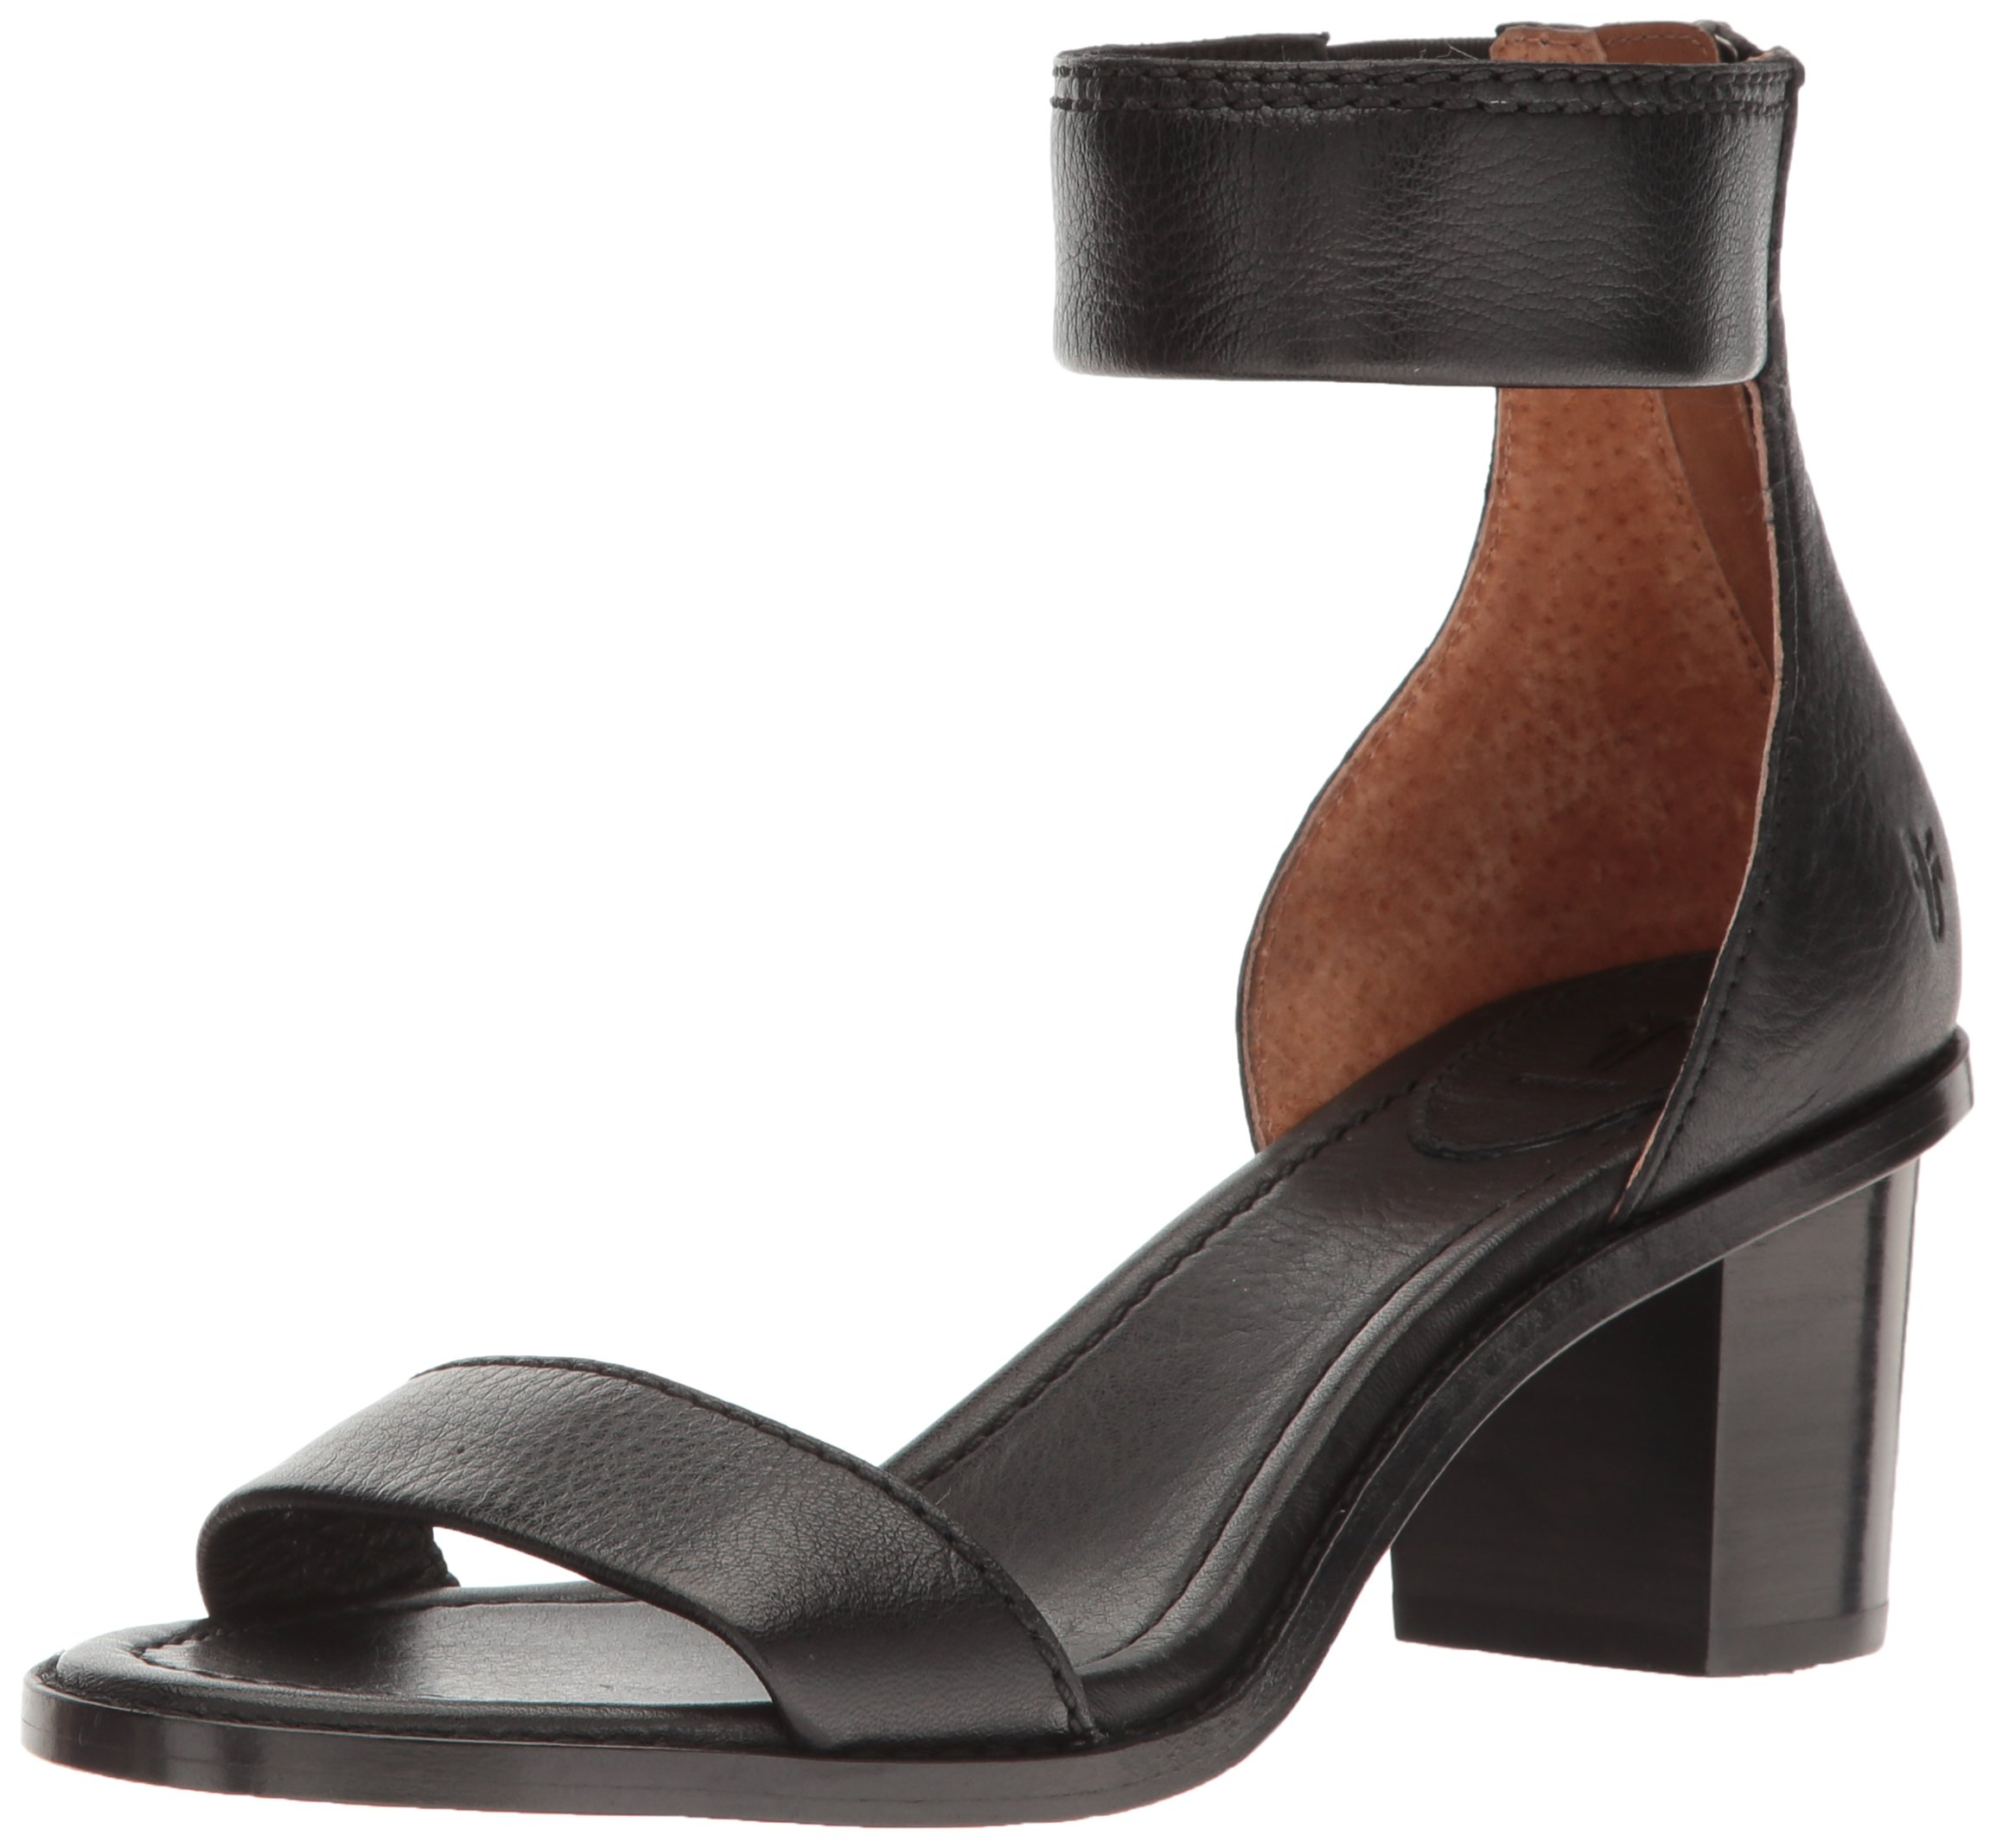 FRYE Women's Brielle Back Zip Dress Sandal, Black, 9 M US